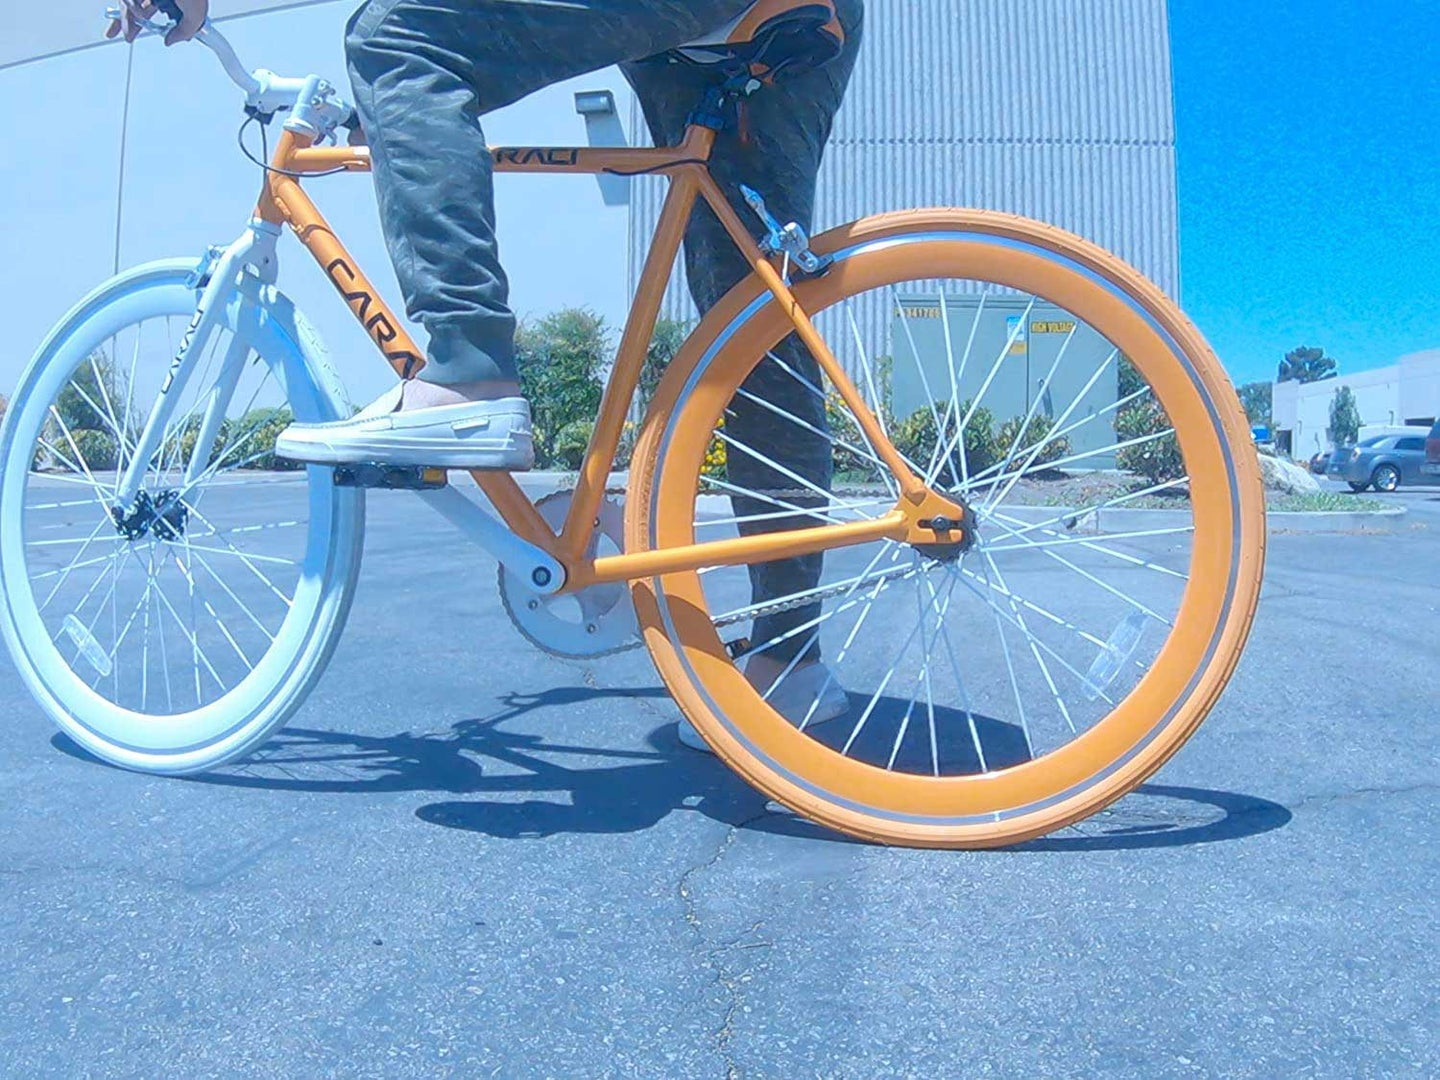 Because the chain, gear, and wheel are directly connected without gears, a fixed-gear bike can't coast.